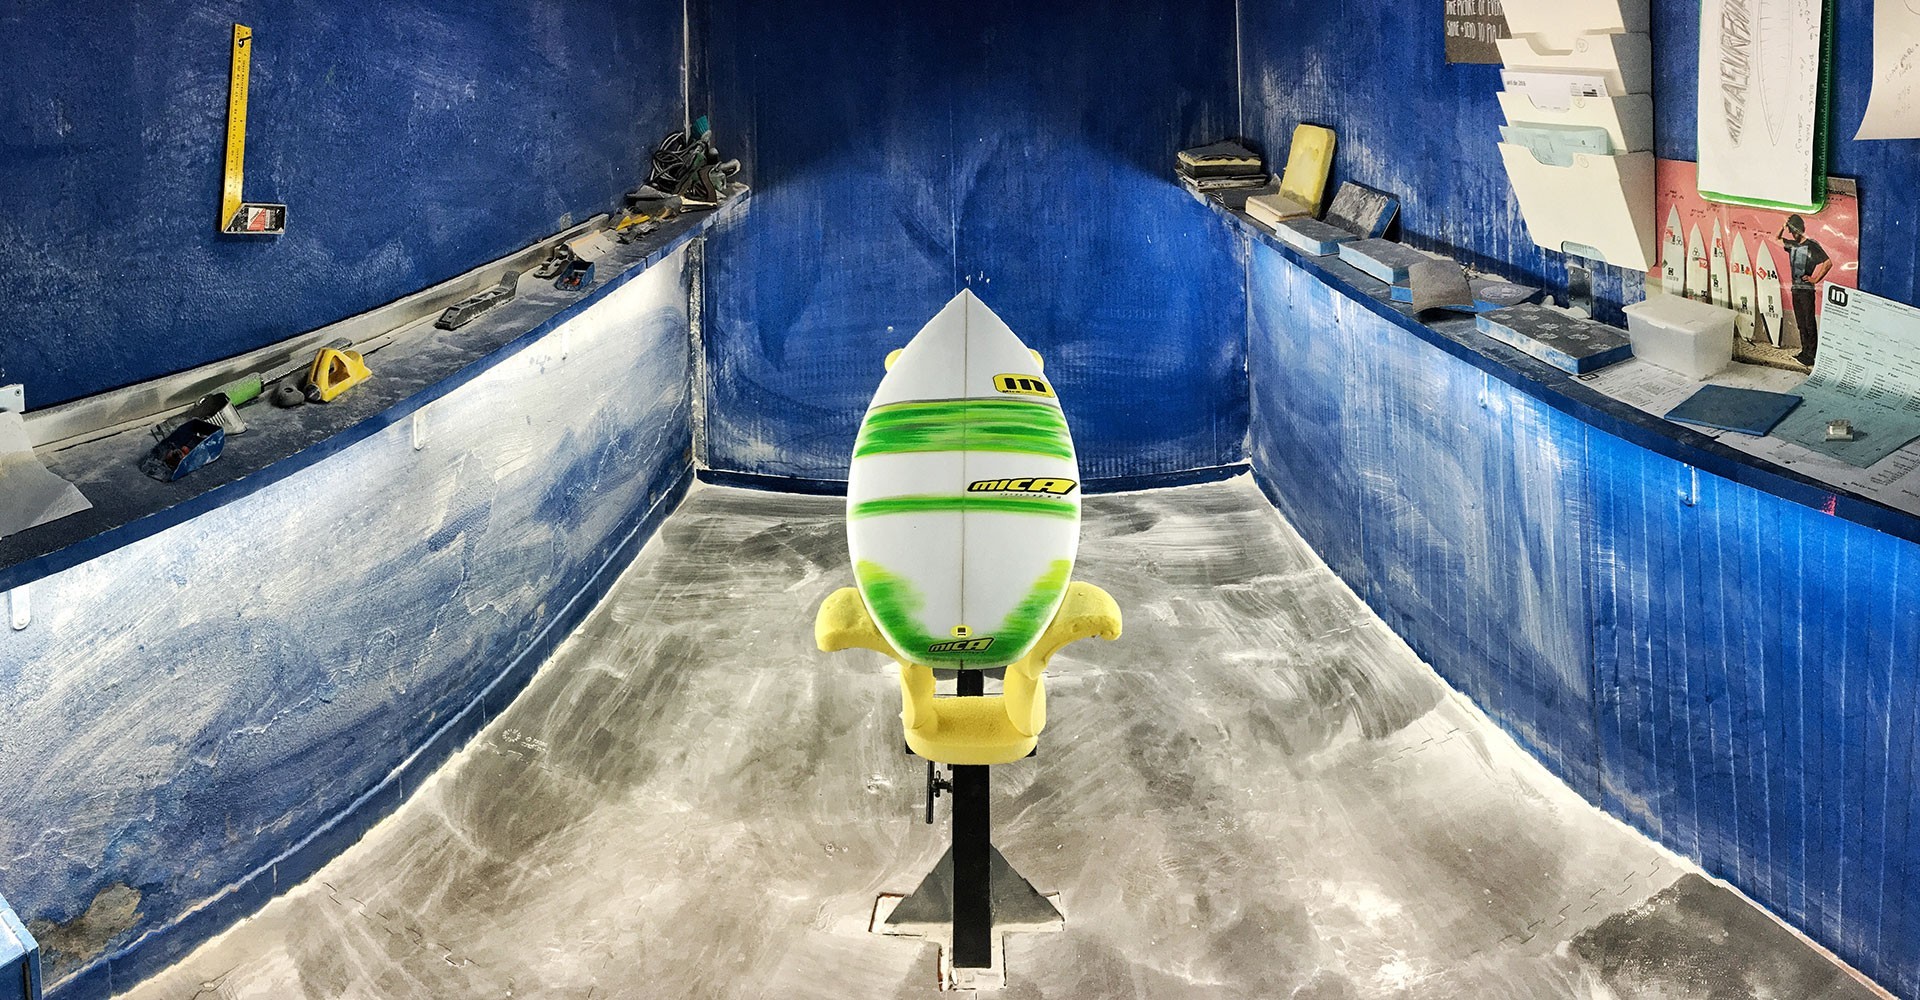 surfboard, mica, mica lourenco, shape room, shaping, surf, surfing, board